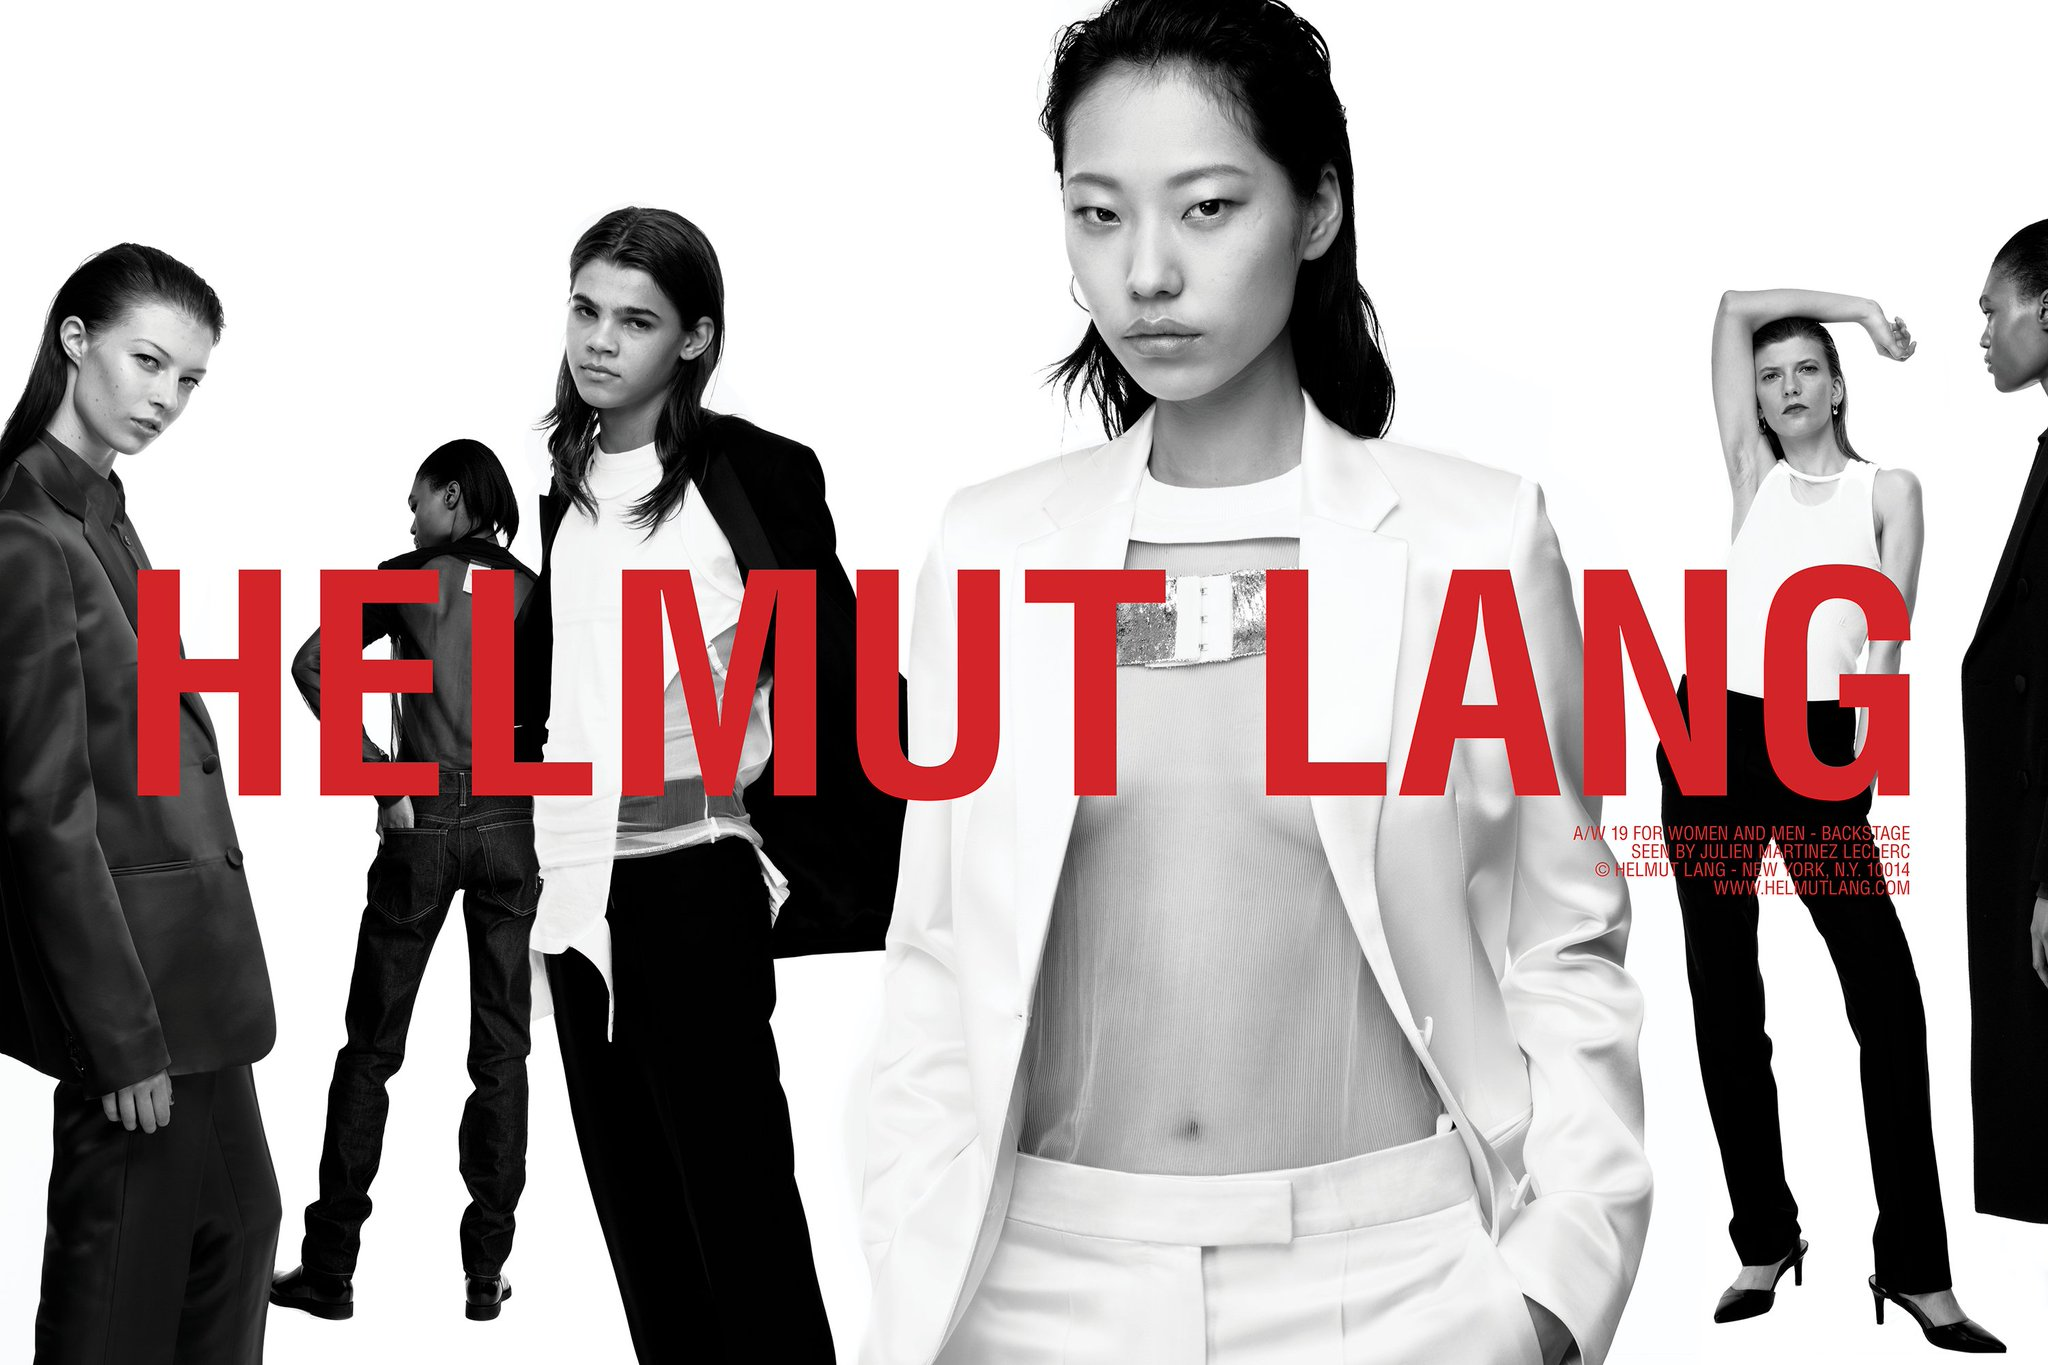 Helmut Lang Fall 2019 Ad Campaign